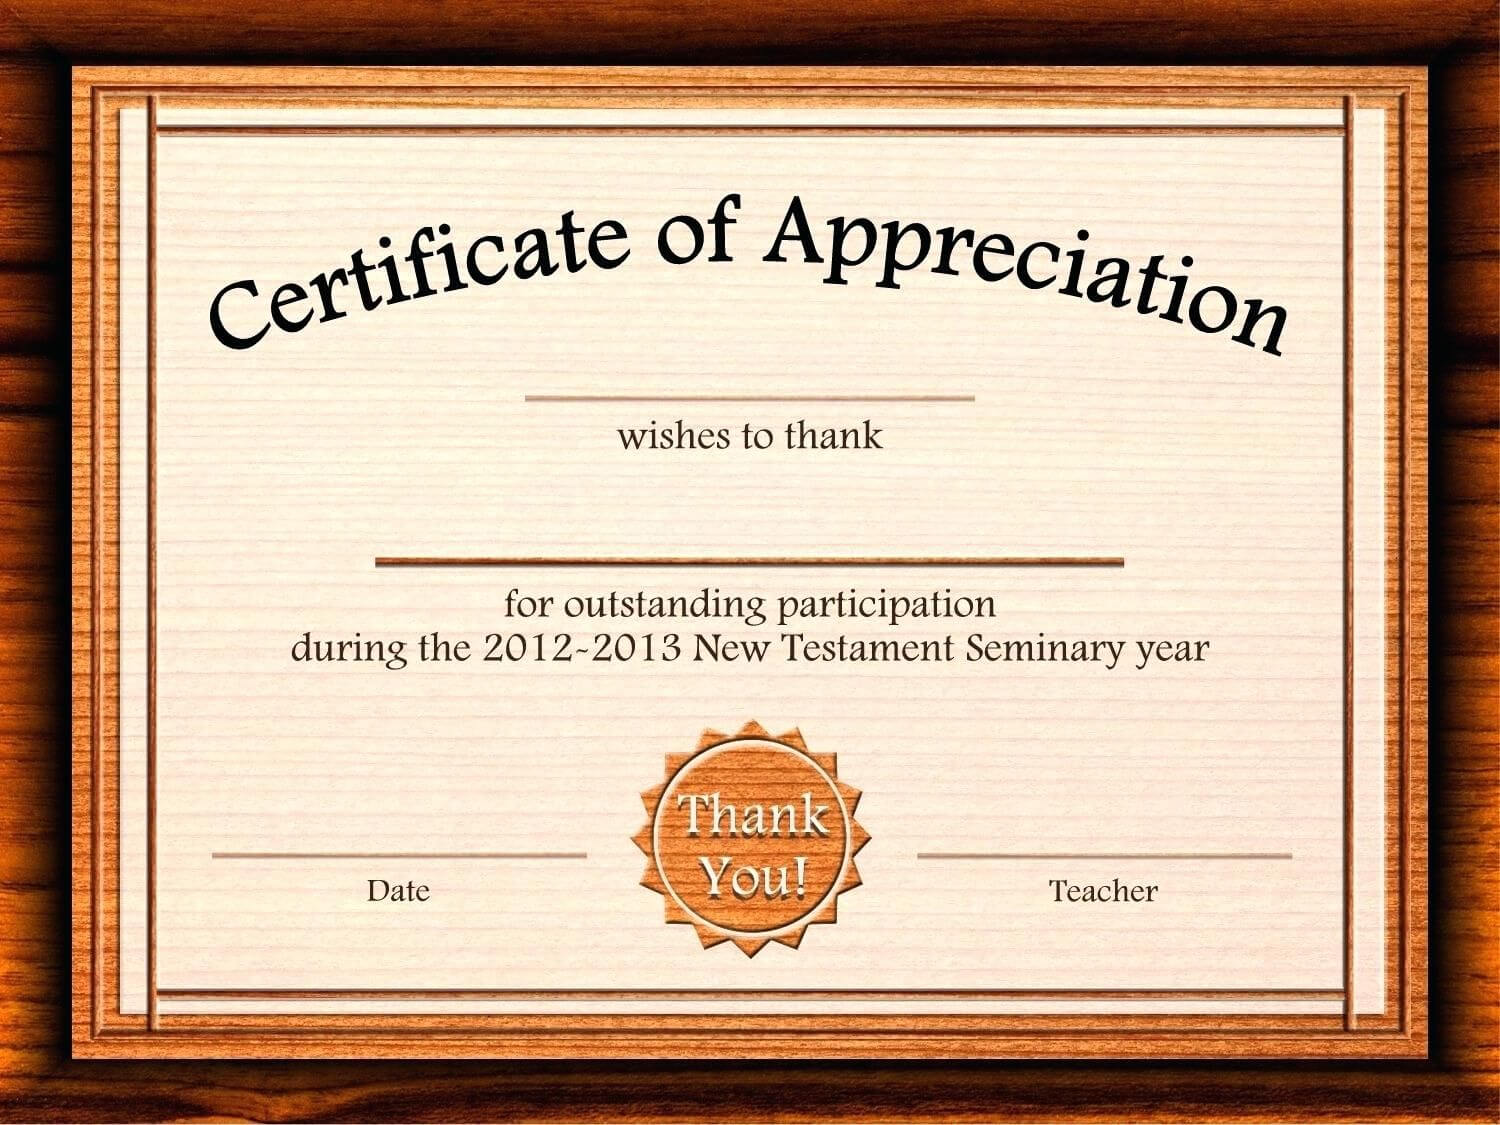 Template: Editable Certificate Of Appreciation Template Free regarding Participation Certificate Templates Free Download